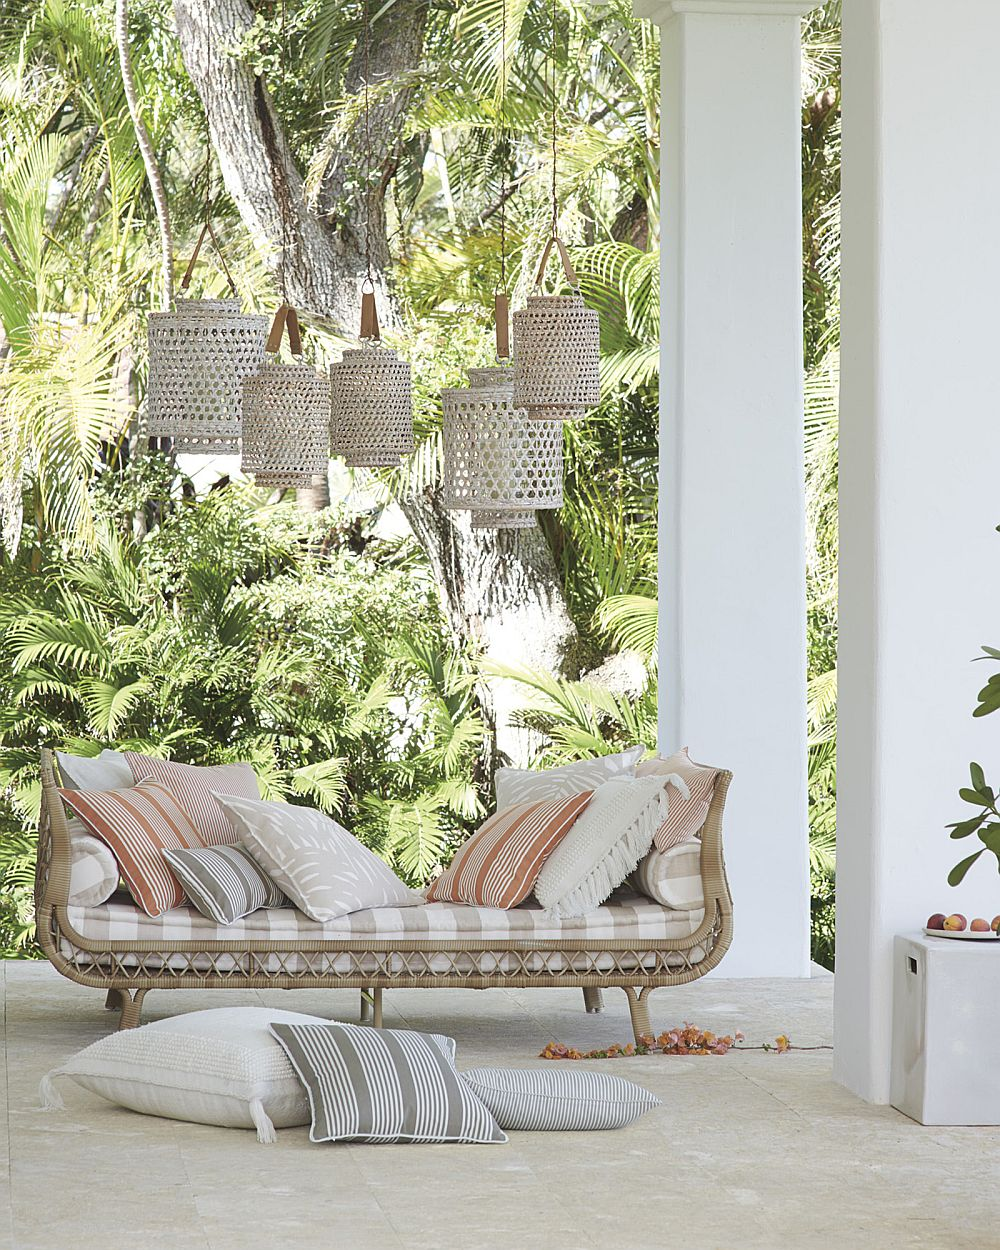 Finding luxury in natural materials is a summer trend that never fails!